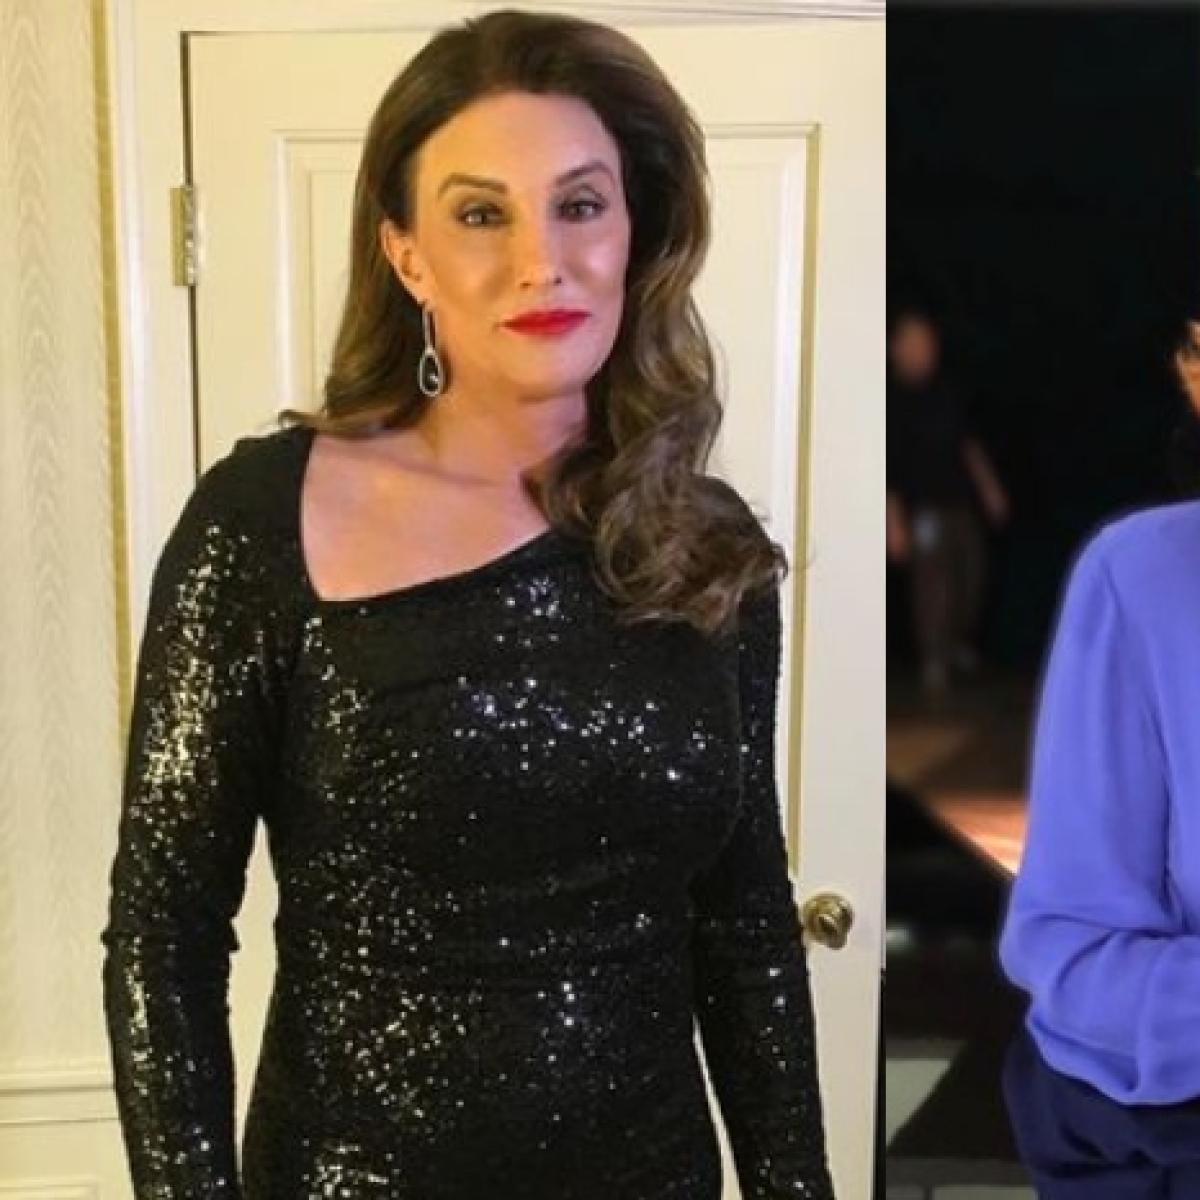 Caitlyn Jenner accepts Joy Behar's apology for misgendering her, says 'I'm not about cancel culture'